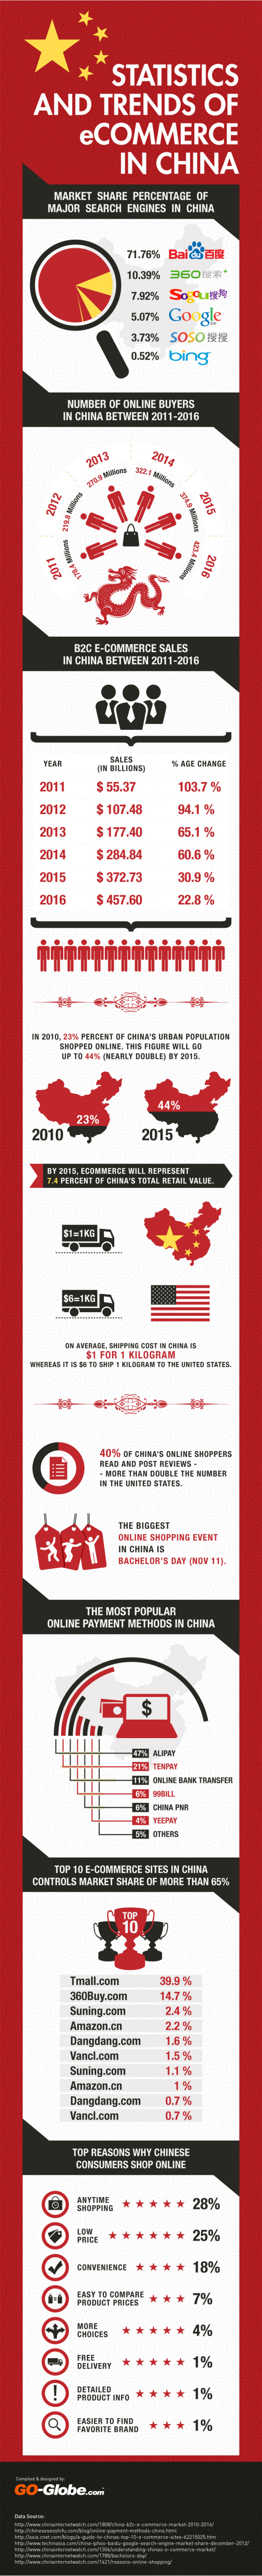 E-commerce in China Statistics And Trends Infographic